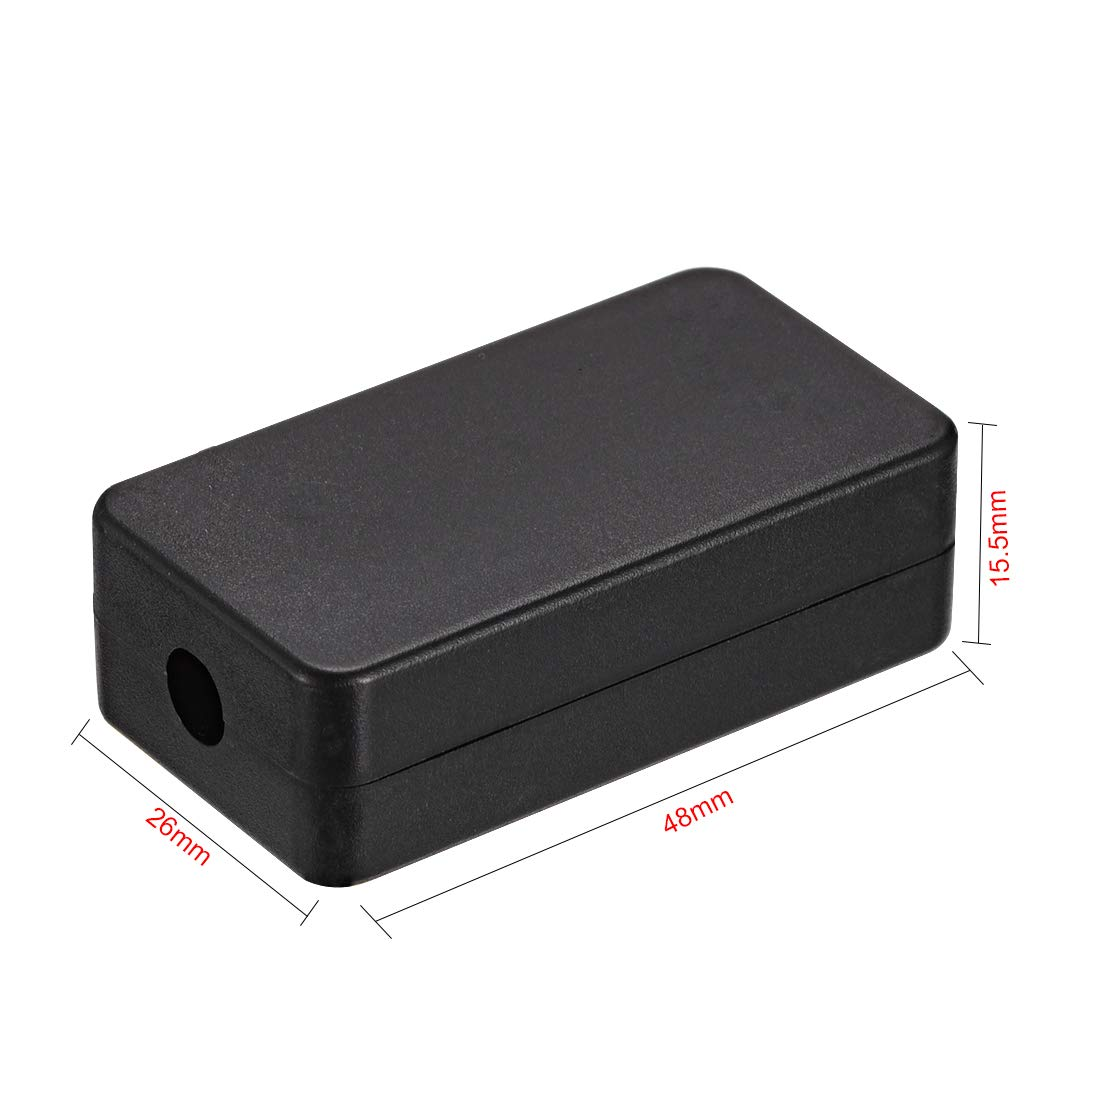 uxcell 5pcs Plastic Electric Project Case Junction Box 46x36x18mm